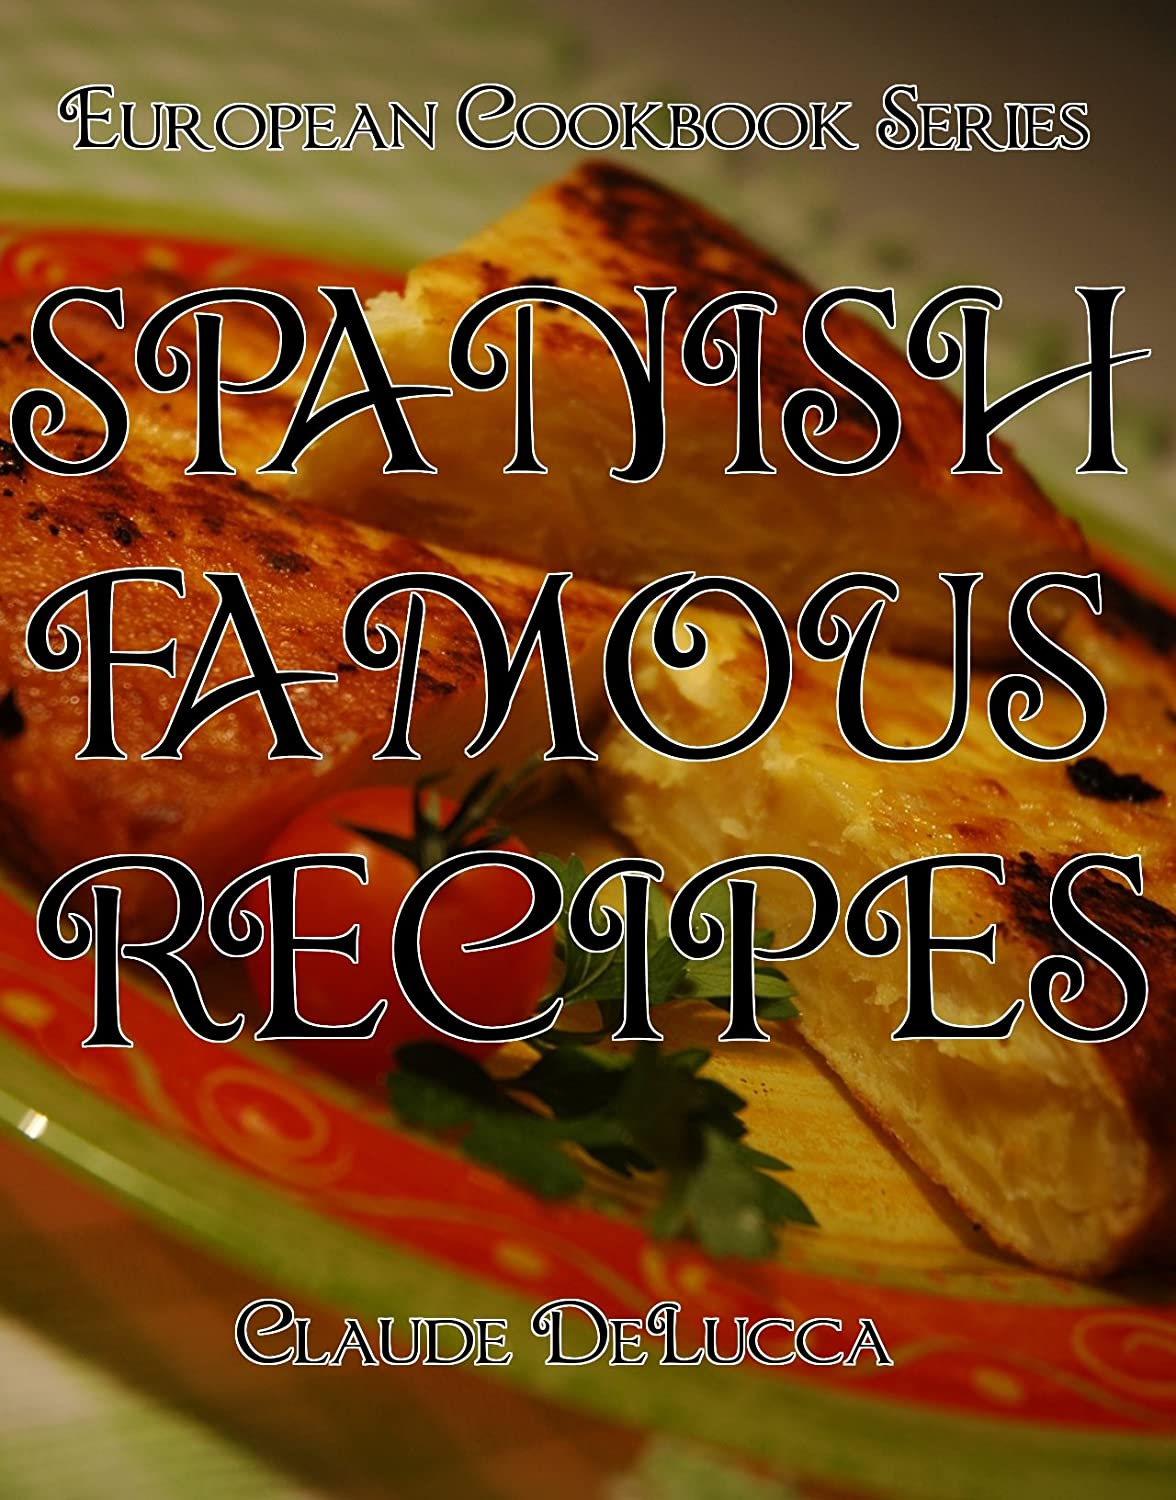 European Cookbook Series: Spanish Famous Recipes by Claude DeLucca